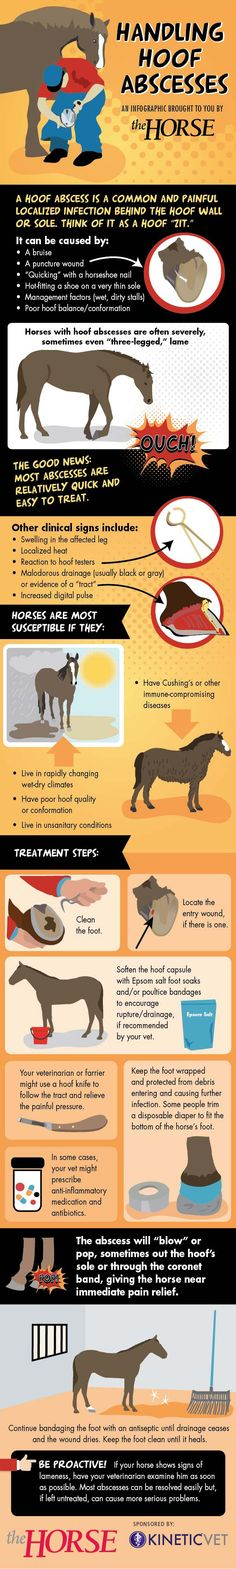 [INFOGRAPHIC] Handling Hoof Abscesses - TheHorse.com | Hoof abscesses are a common cause of severe lameness in horses. Find out how to manage one in our step-by-step visual guide, sponsored by Kinetic Vet! #horses #horsehealth #hoofcare #TheHorse